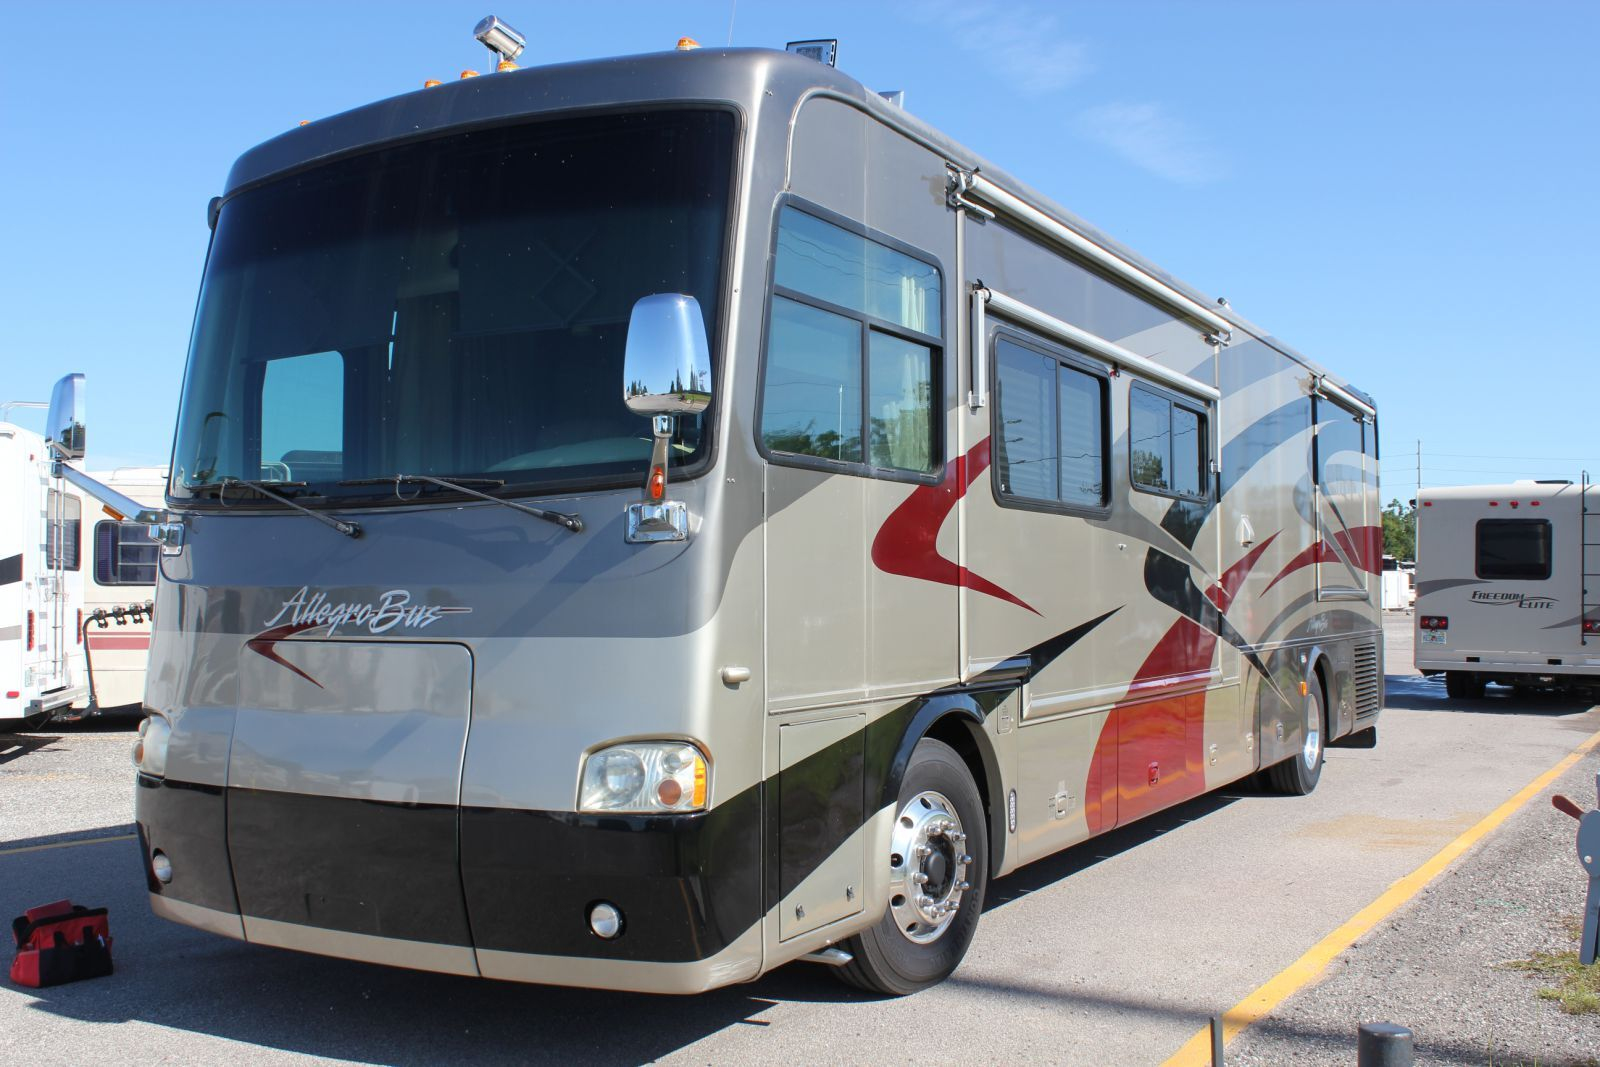 (Sample) An overall picture from one of our previous RV Inspections: 2005 Tiffin Allegro Bus